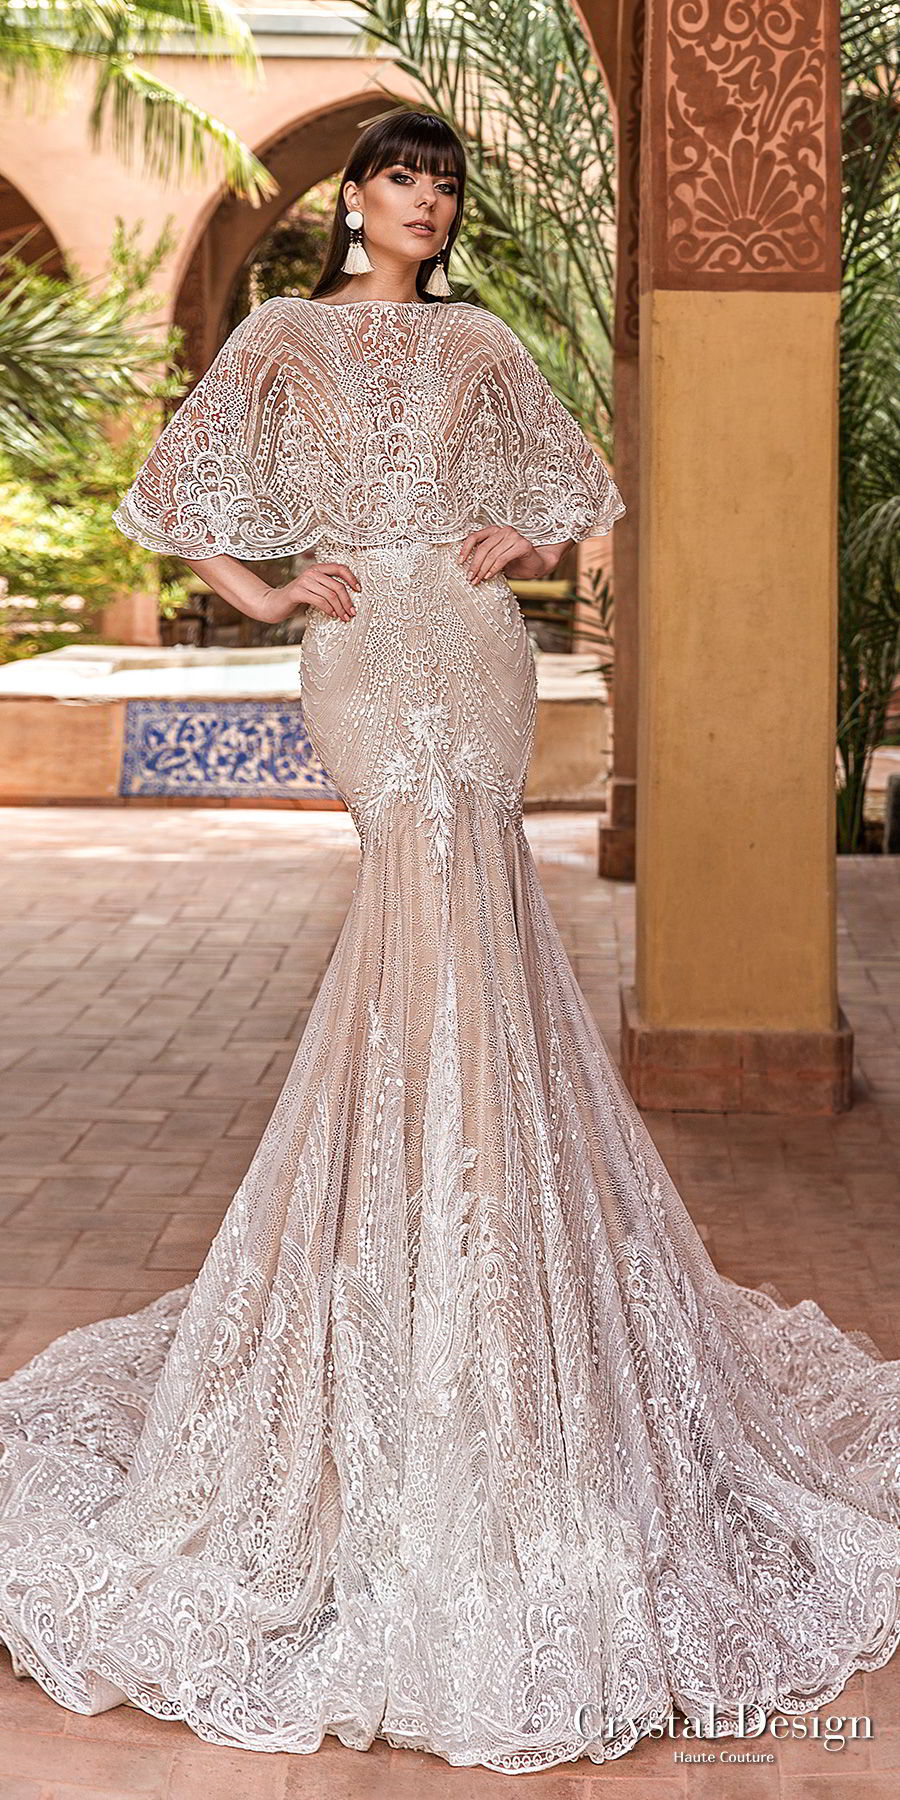 crystal design 2018 cap sleeves deep v neck full embellishment elegant trumpet wedding dress capelet open v back chapel train (liberty) mv